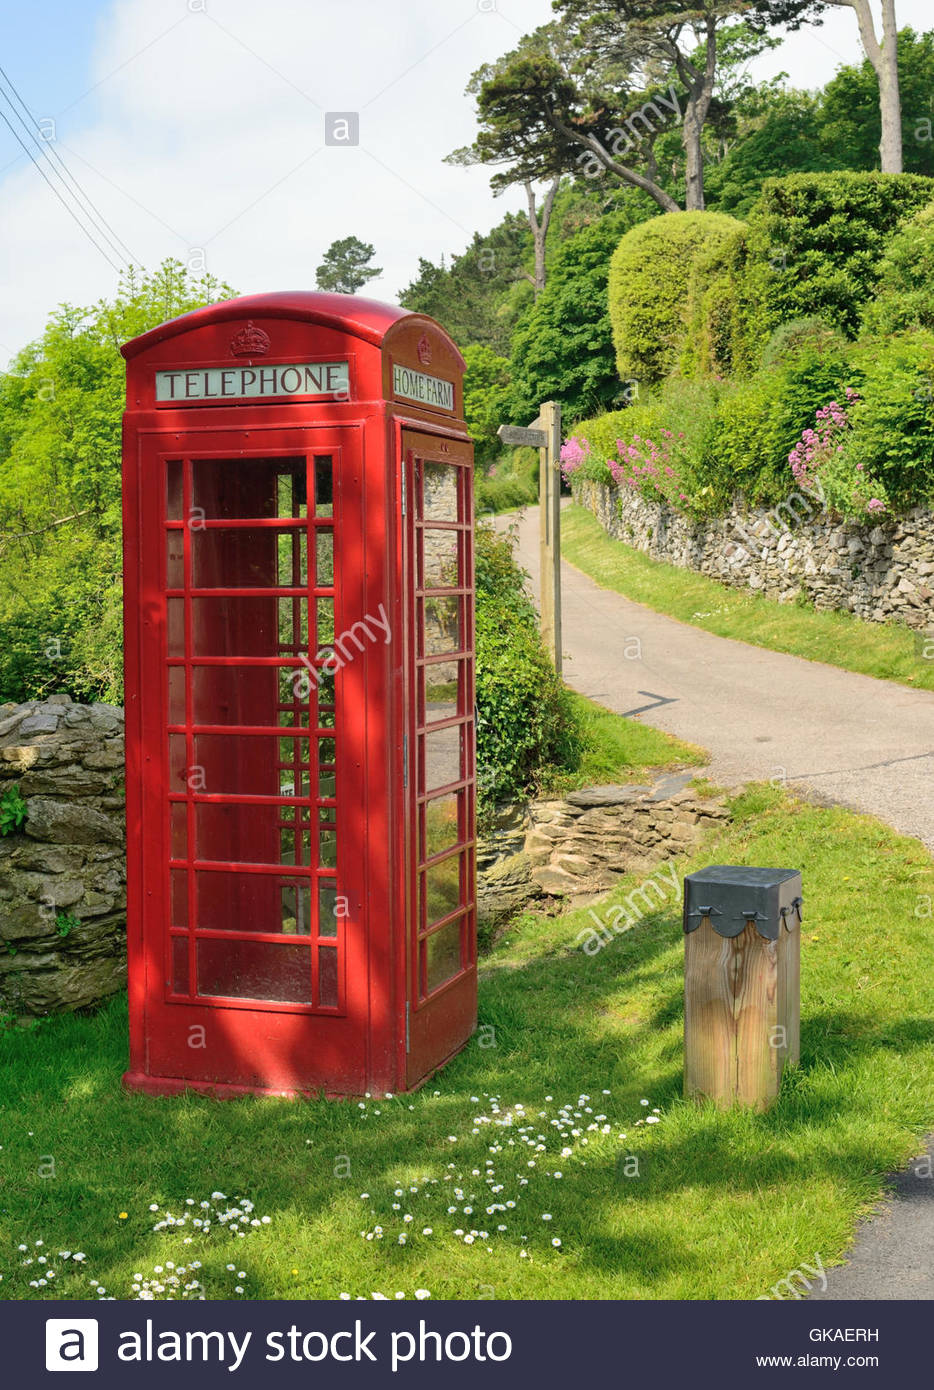 an-empty-red-telephone-box-beside-a-country-lane-in-a-remote-location-GKAERH.jpg